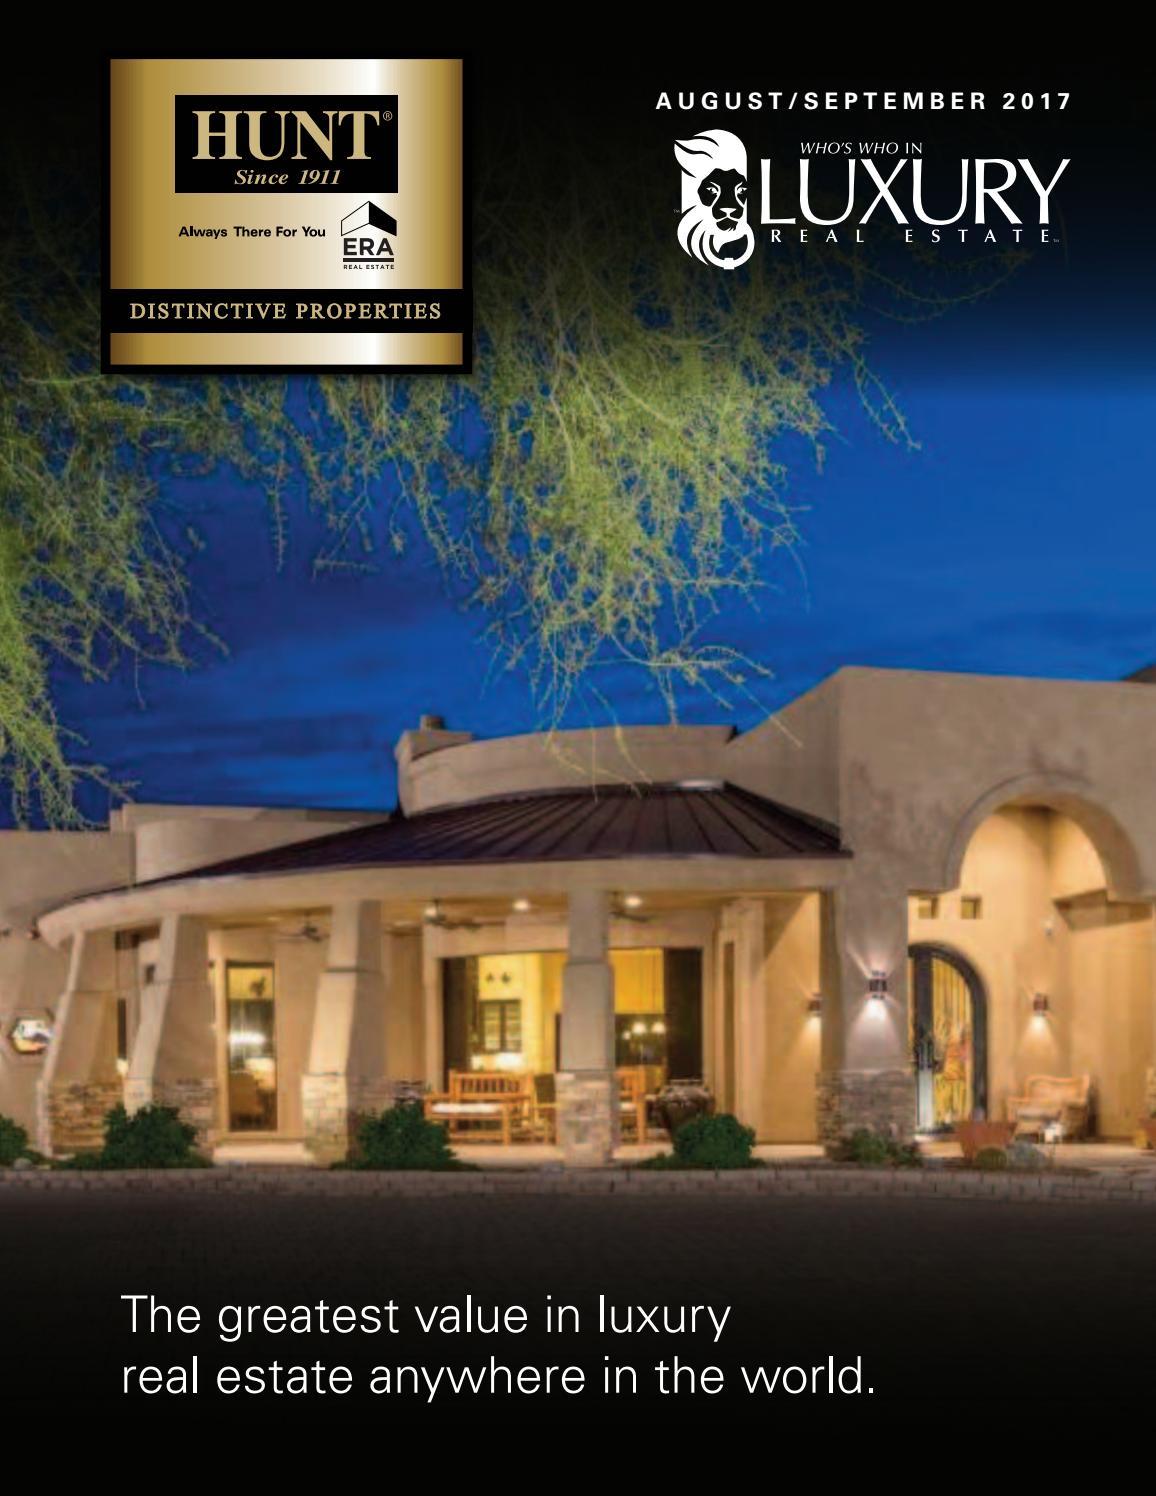 2016 602 215 399 unique contemporary - August September 2017 Distinctive Properties By Hunt Marketing Issuu